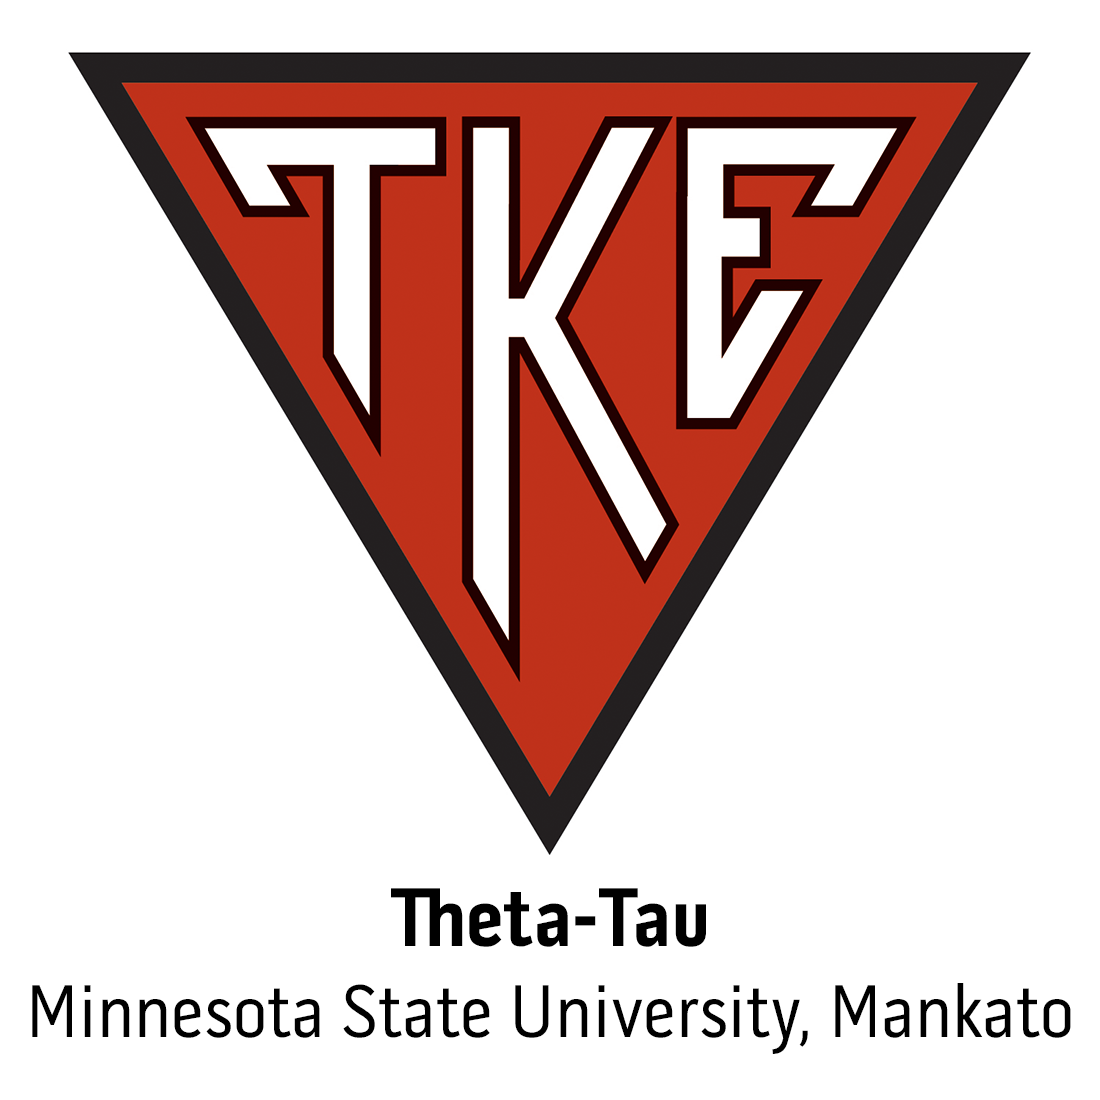 Theta-Tau Chapter at Minnesota State University, Mankato